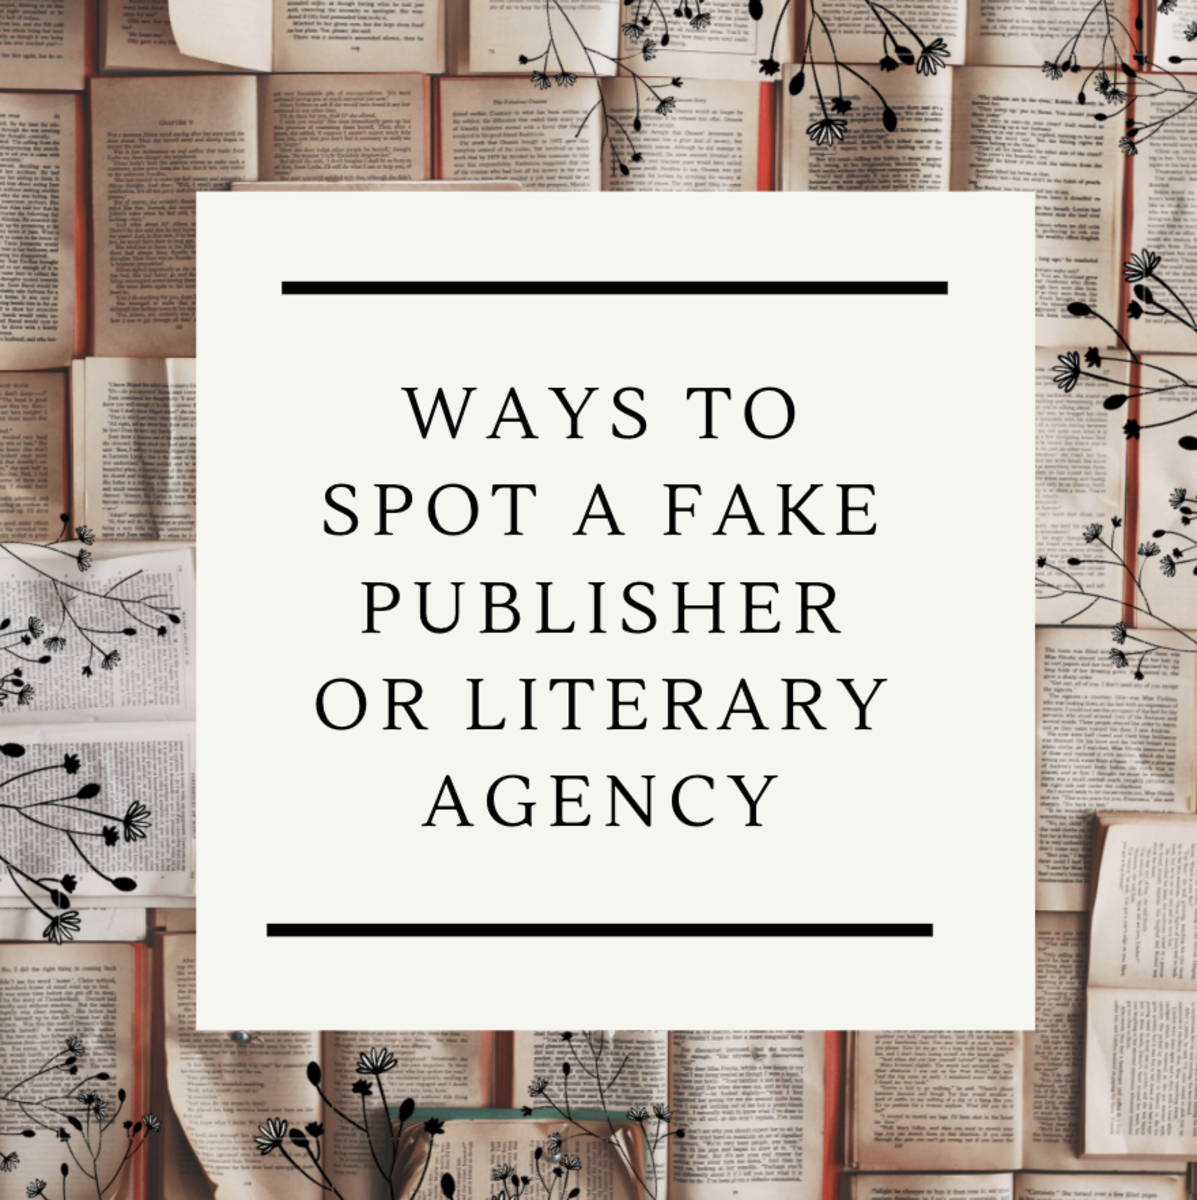 Don't let fake publishers take advantage of you. Read on to learn how to protect yourself.